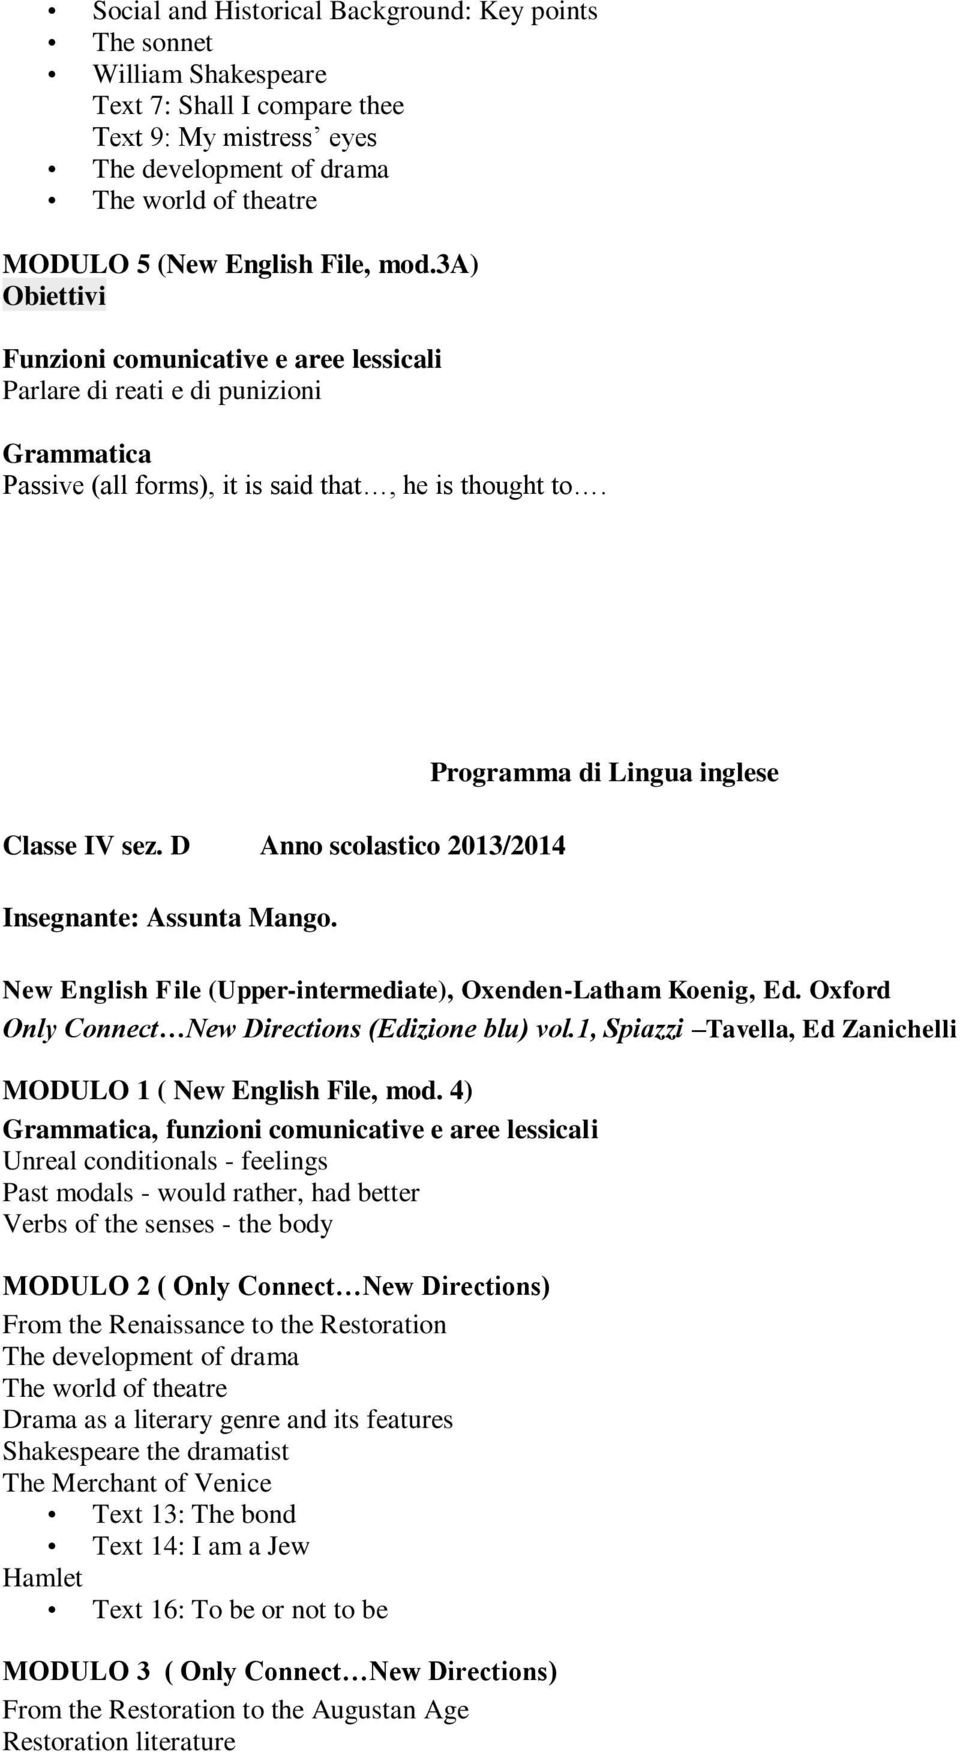 Programma di Lingua inglese New English File (Upper-intermediate), Oxenden-Latham Koenig, Ed. Oxford Only Connect New Directions (Edizione blu) vol.